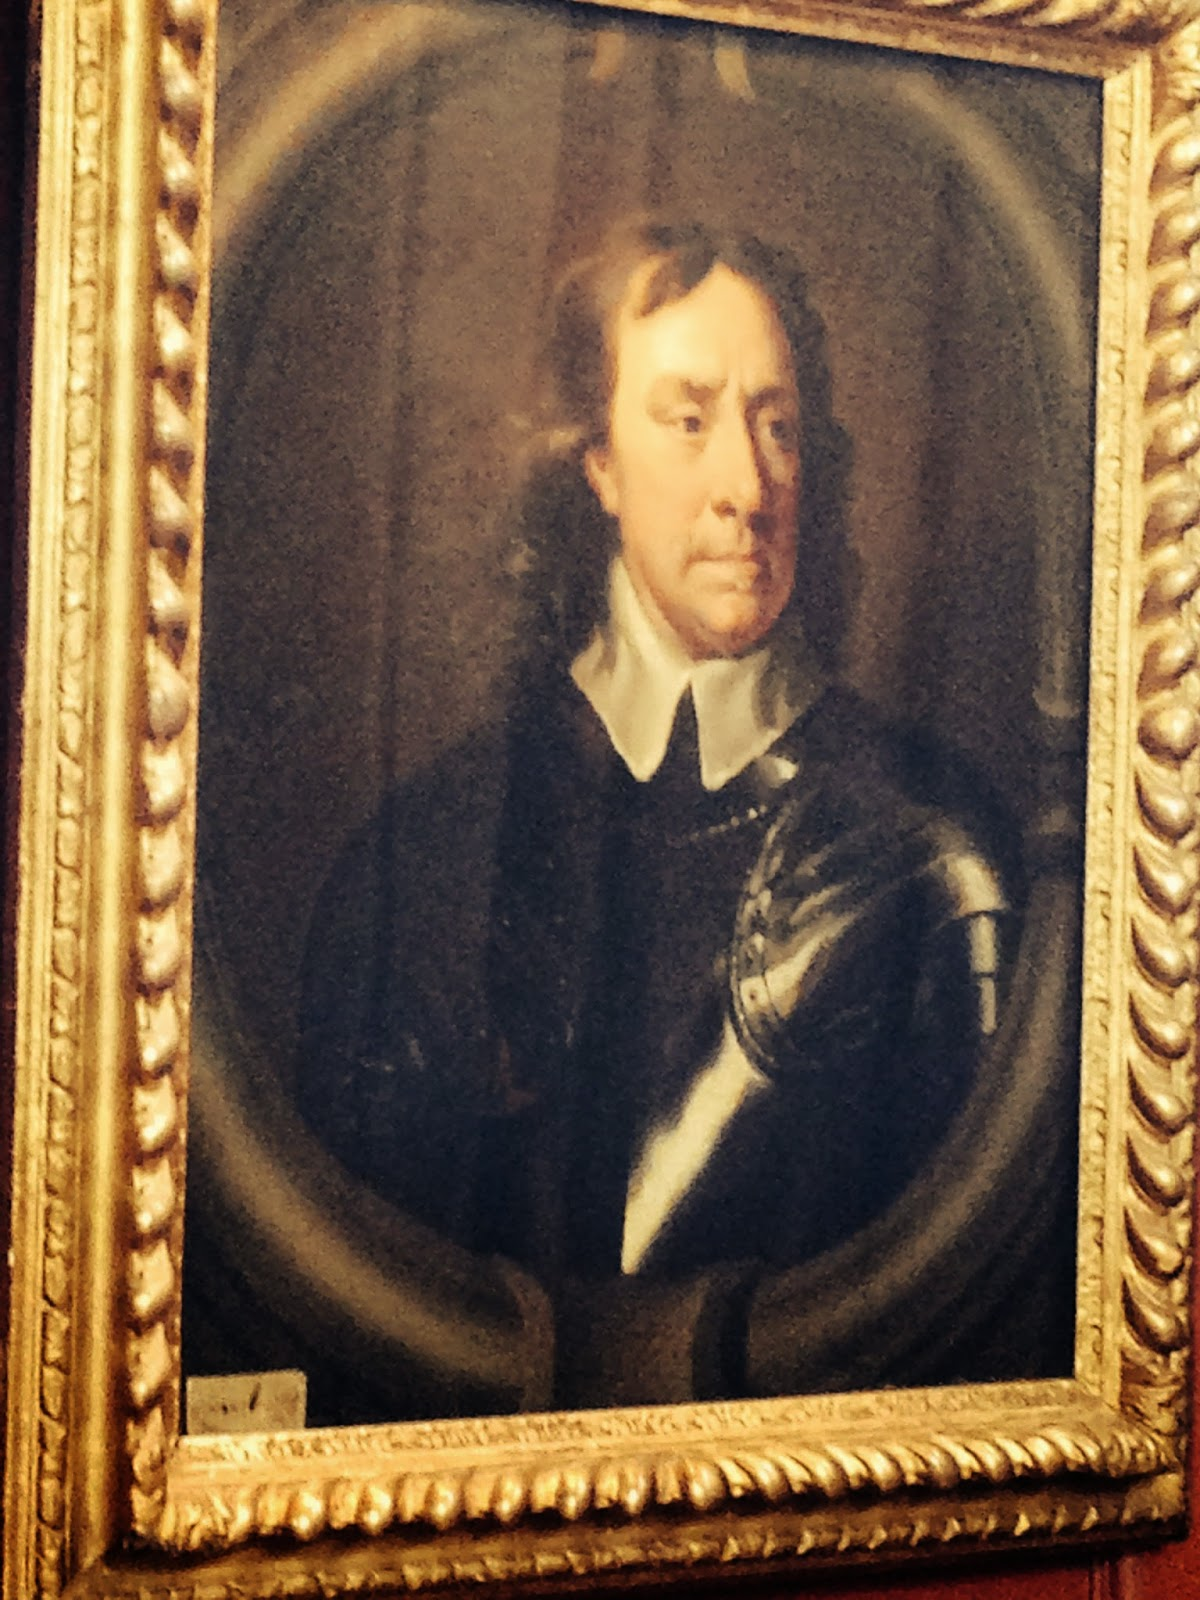 oxford cambridge boat race nyc 2014 portrait of oliver cromwell 1599 1658 hanging in hall at sidney sussex college cambridge photo by jt marlin 2014